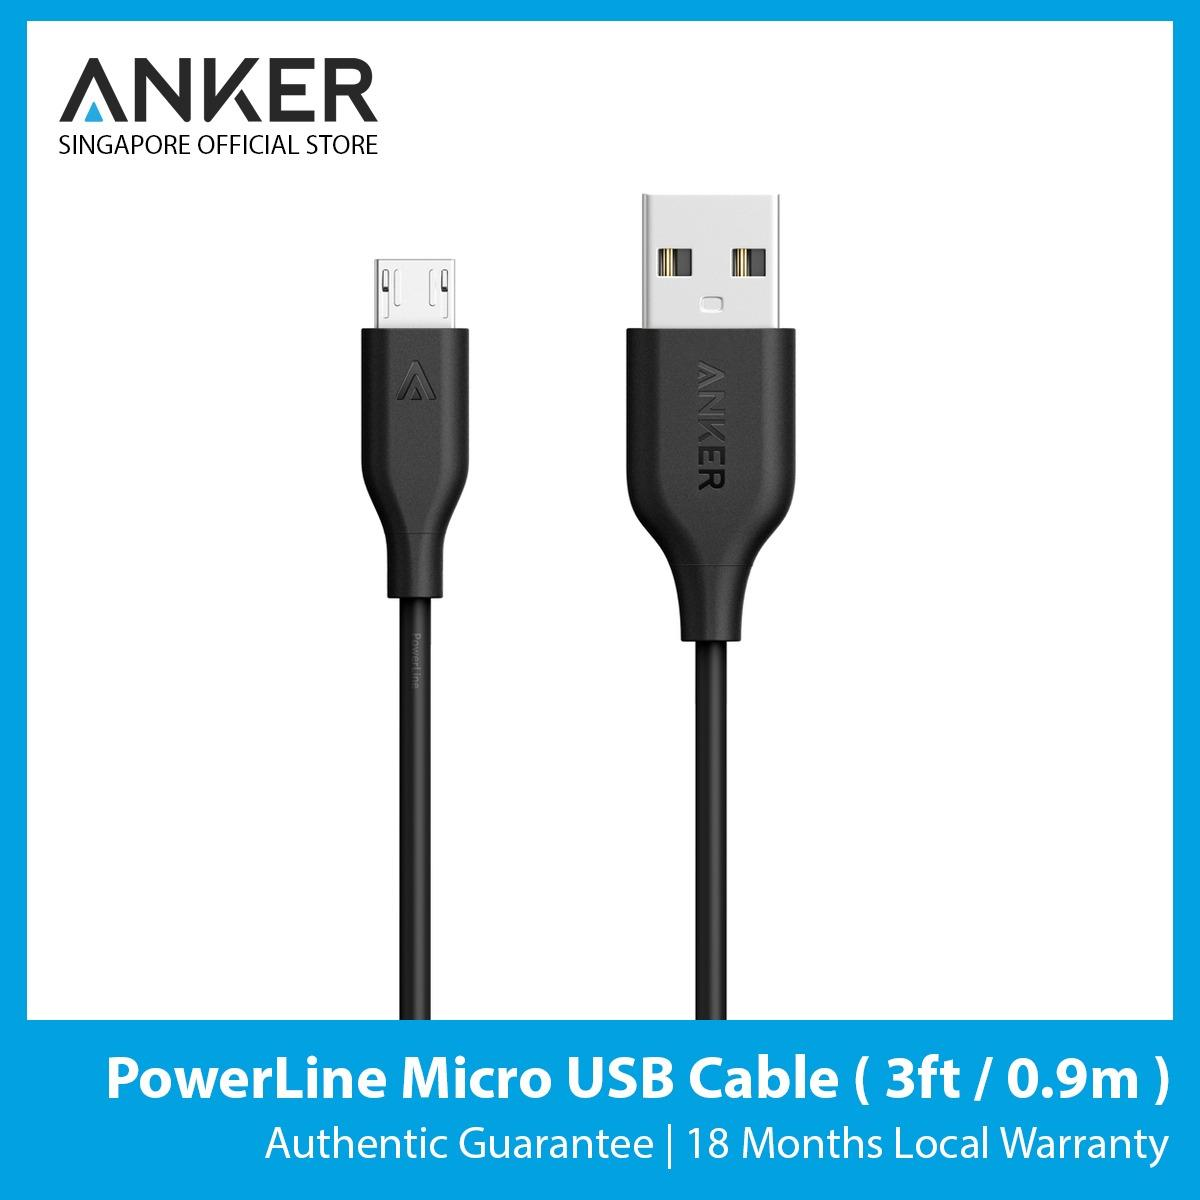 Anker Powerline Micro Usb Cable 3Ft 9M In Stock